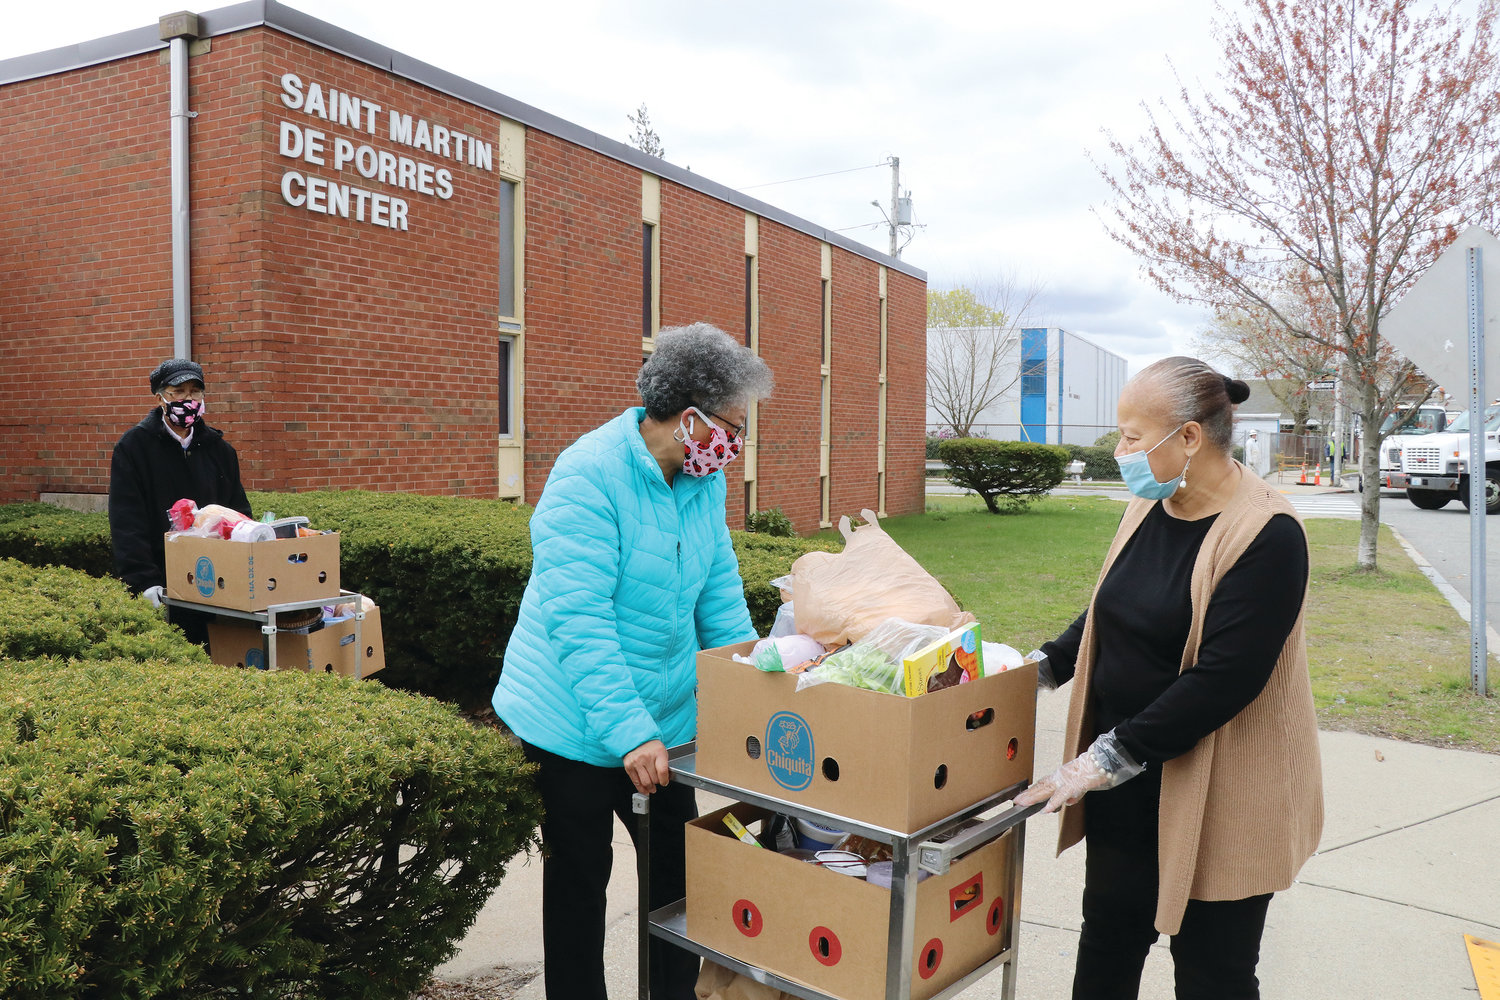 Director Linda A'Vant-Deishinni, at right, helps volunteers Cheryl Gray, left, and Gail Harris move boxes of food to their vehicle for distribution to homebound seniors in need.